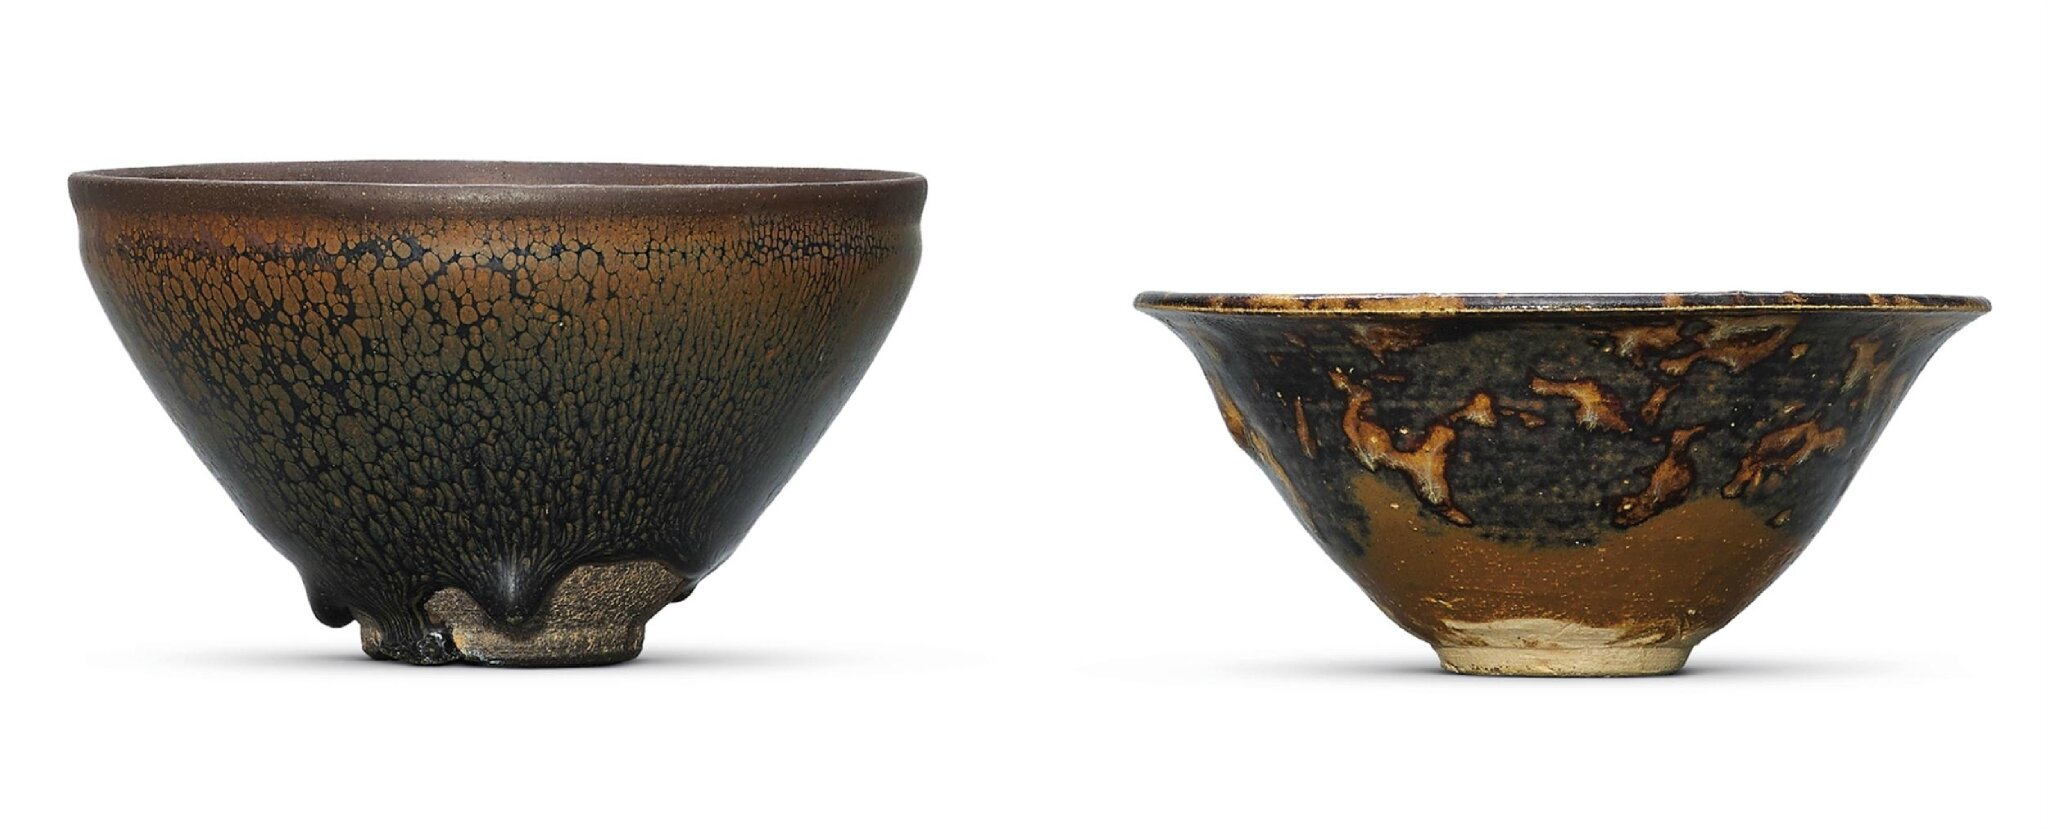 A Jian 'oil spot' black-glazed tea bowl and a Jizhou tortoise shell-glazed tea bowl, Southern Song dynasty (1127-1279)